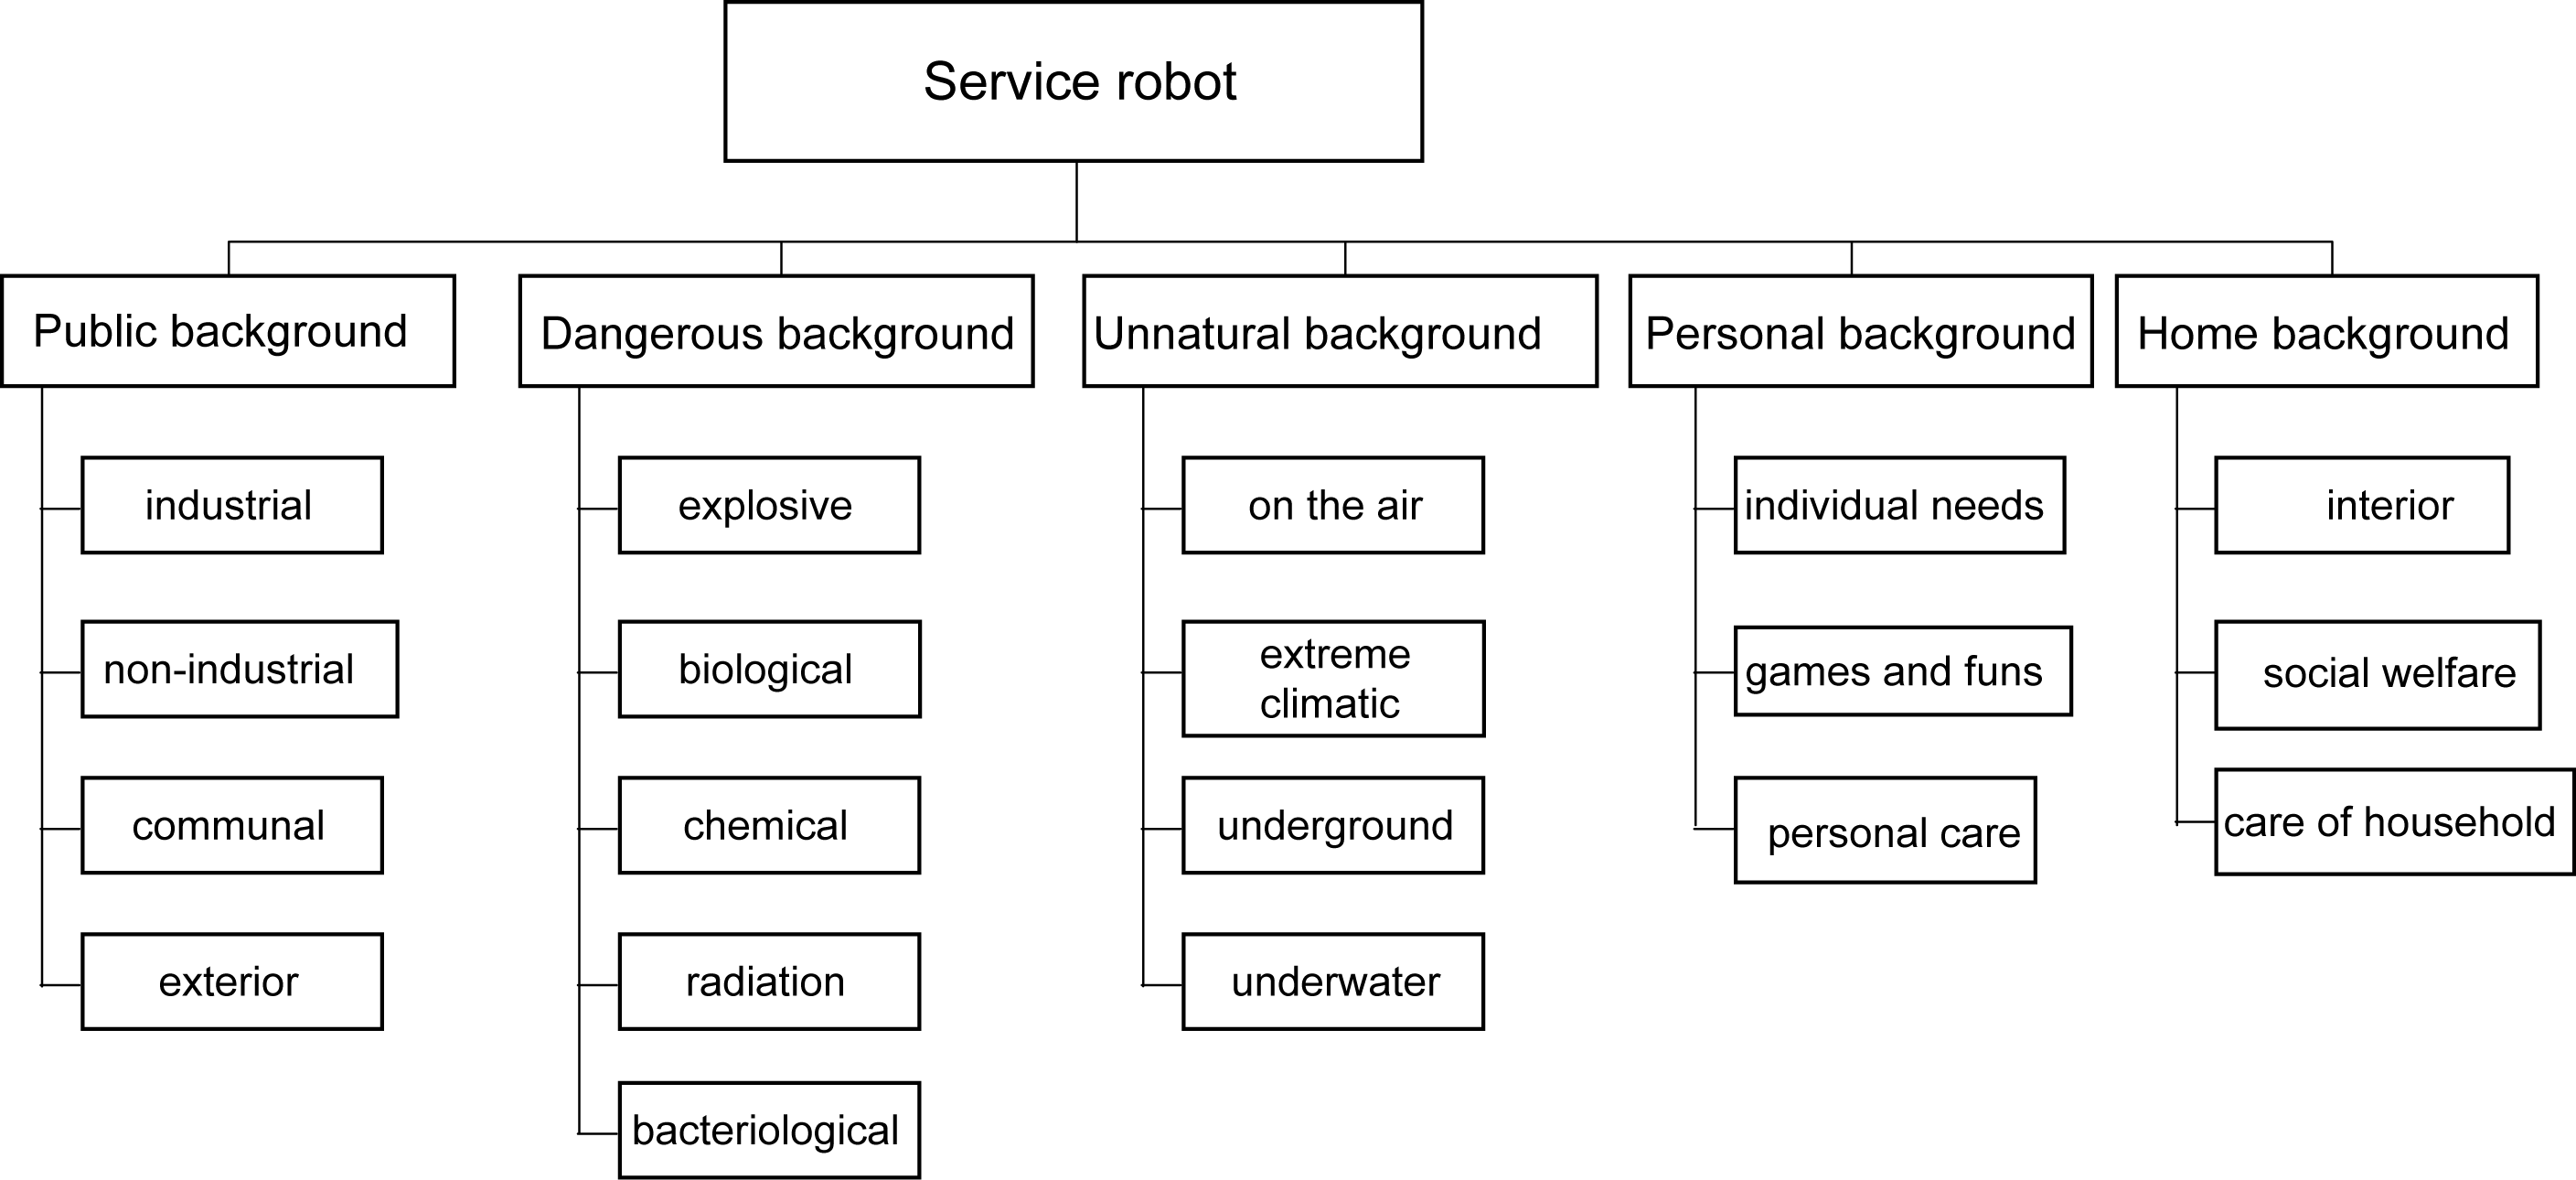 Figure 2  Space of application service robots [1] : Possibility of